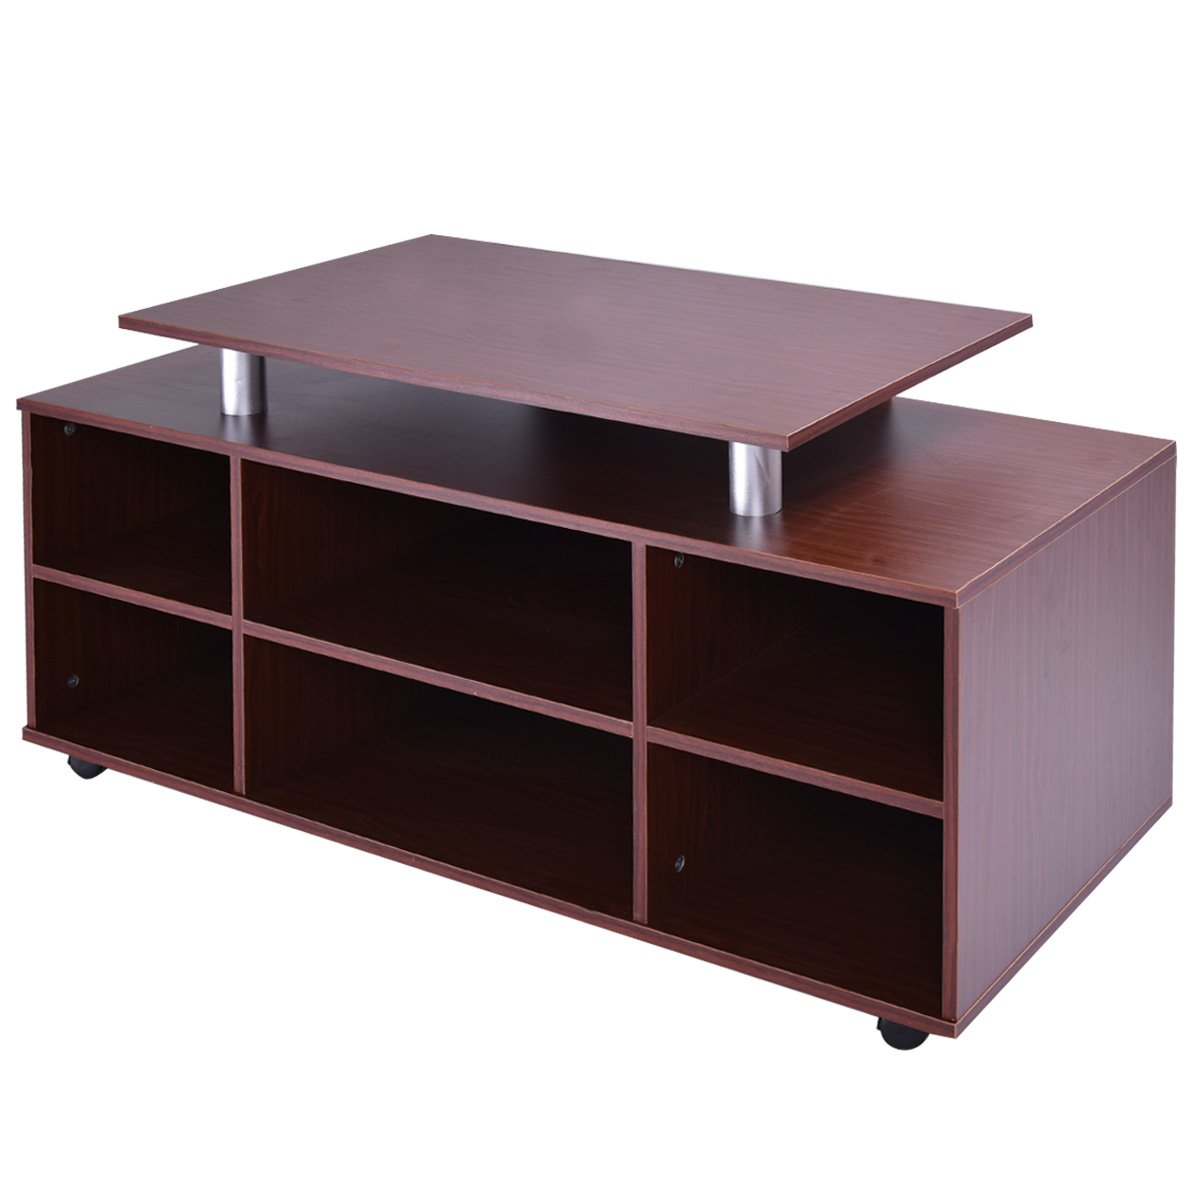 TANGKULA Wheeled TV Stand Entertainment Center Media Console Storage Cabinet Furniture